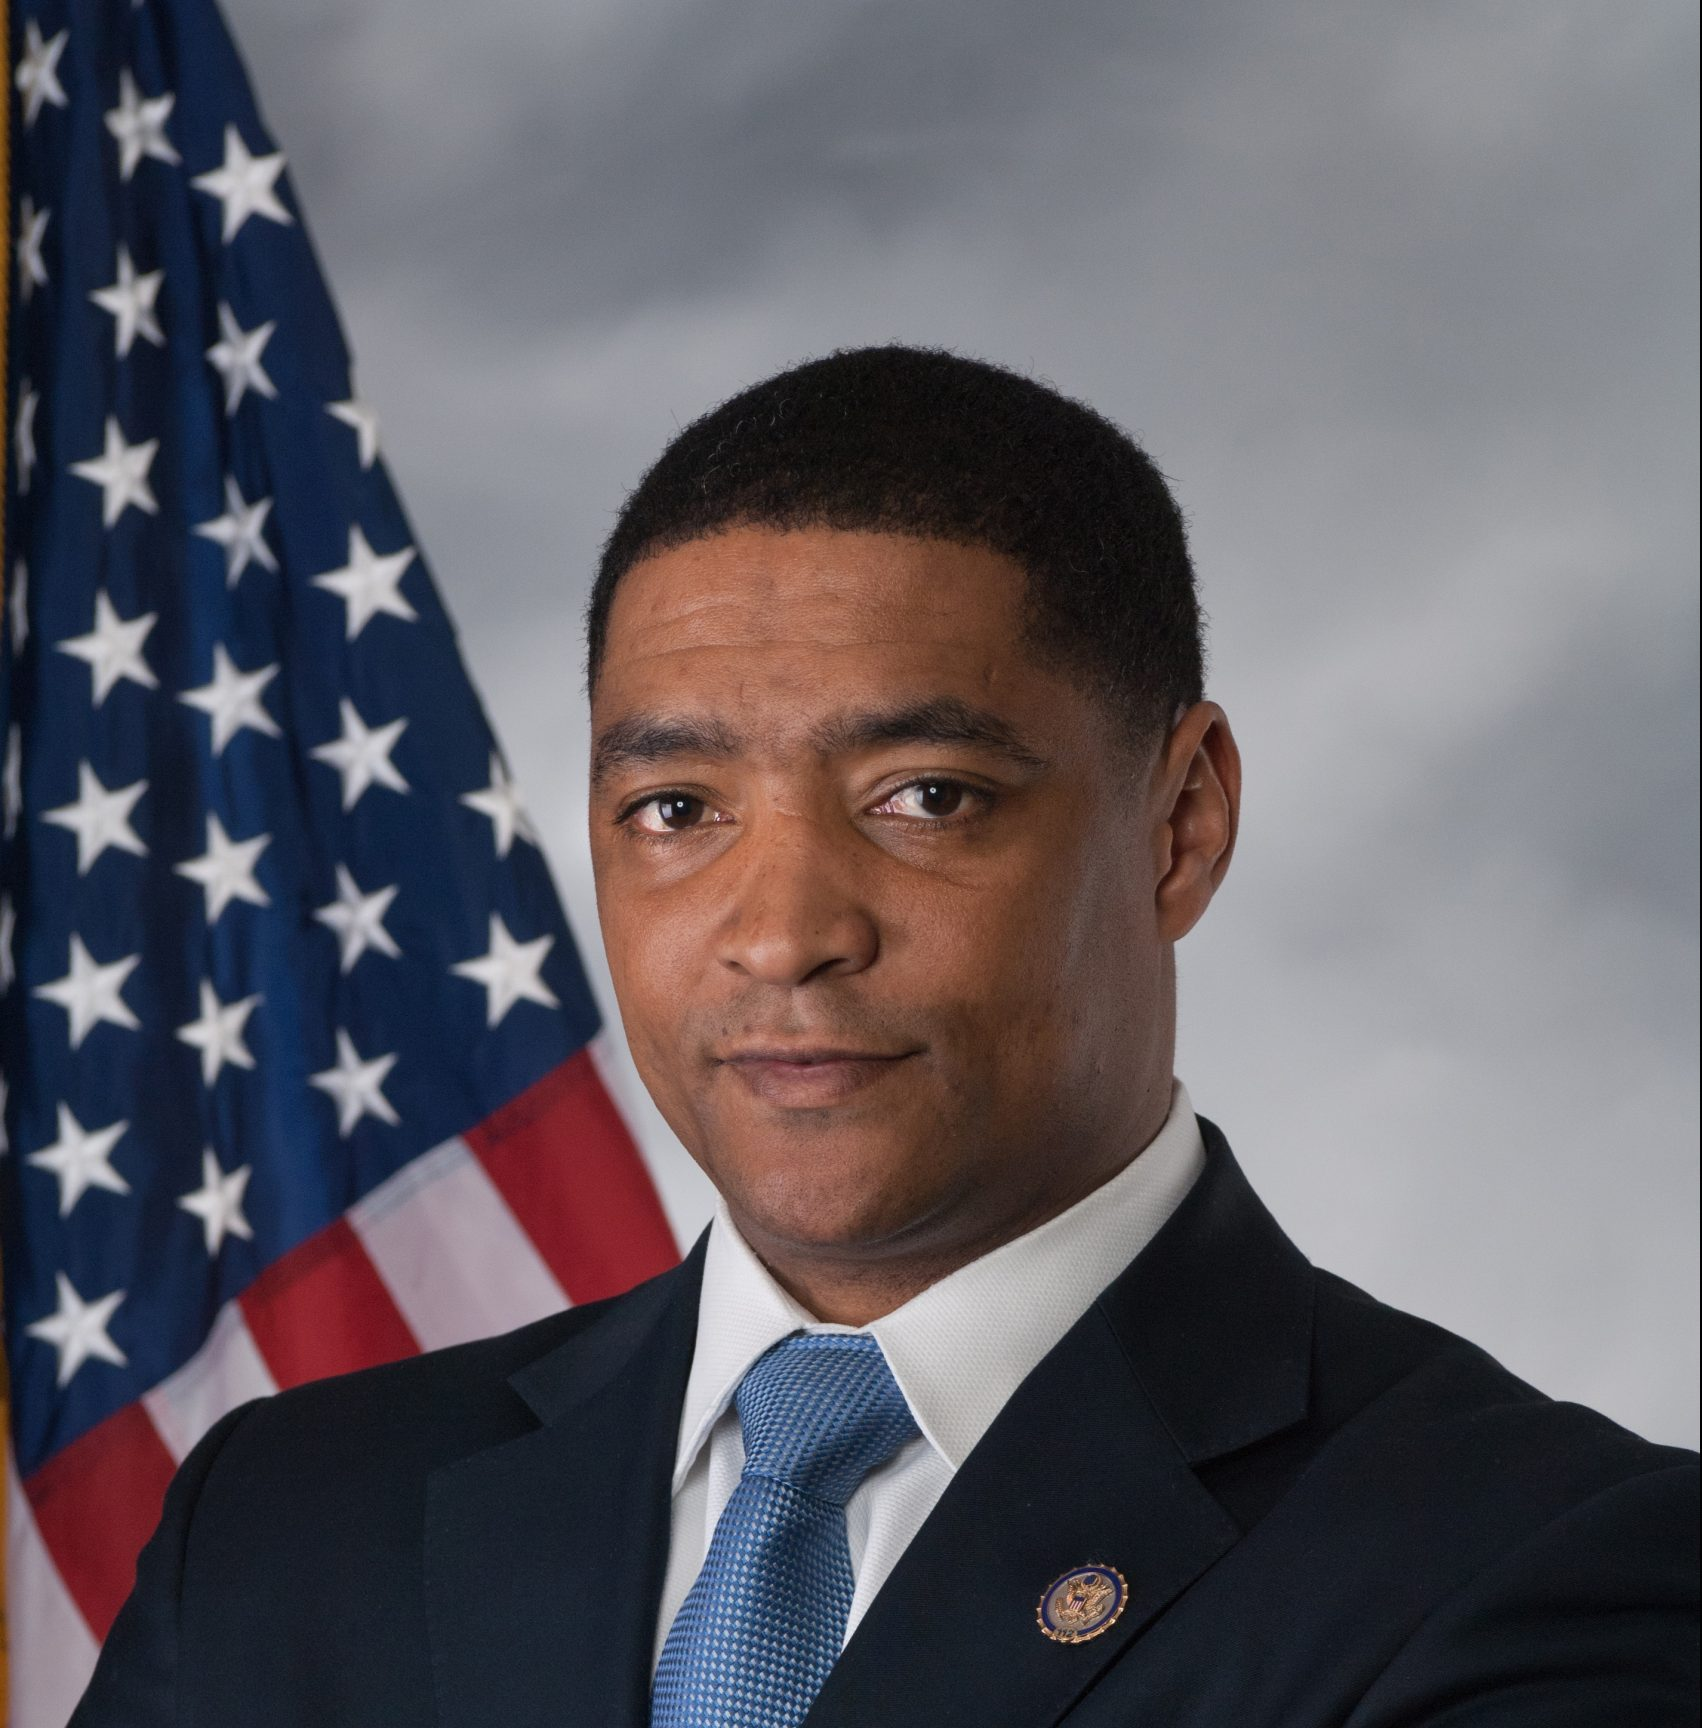 Cedric Richmond - Senior Advisor and Director of the White House Office of Public Engagement